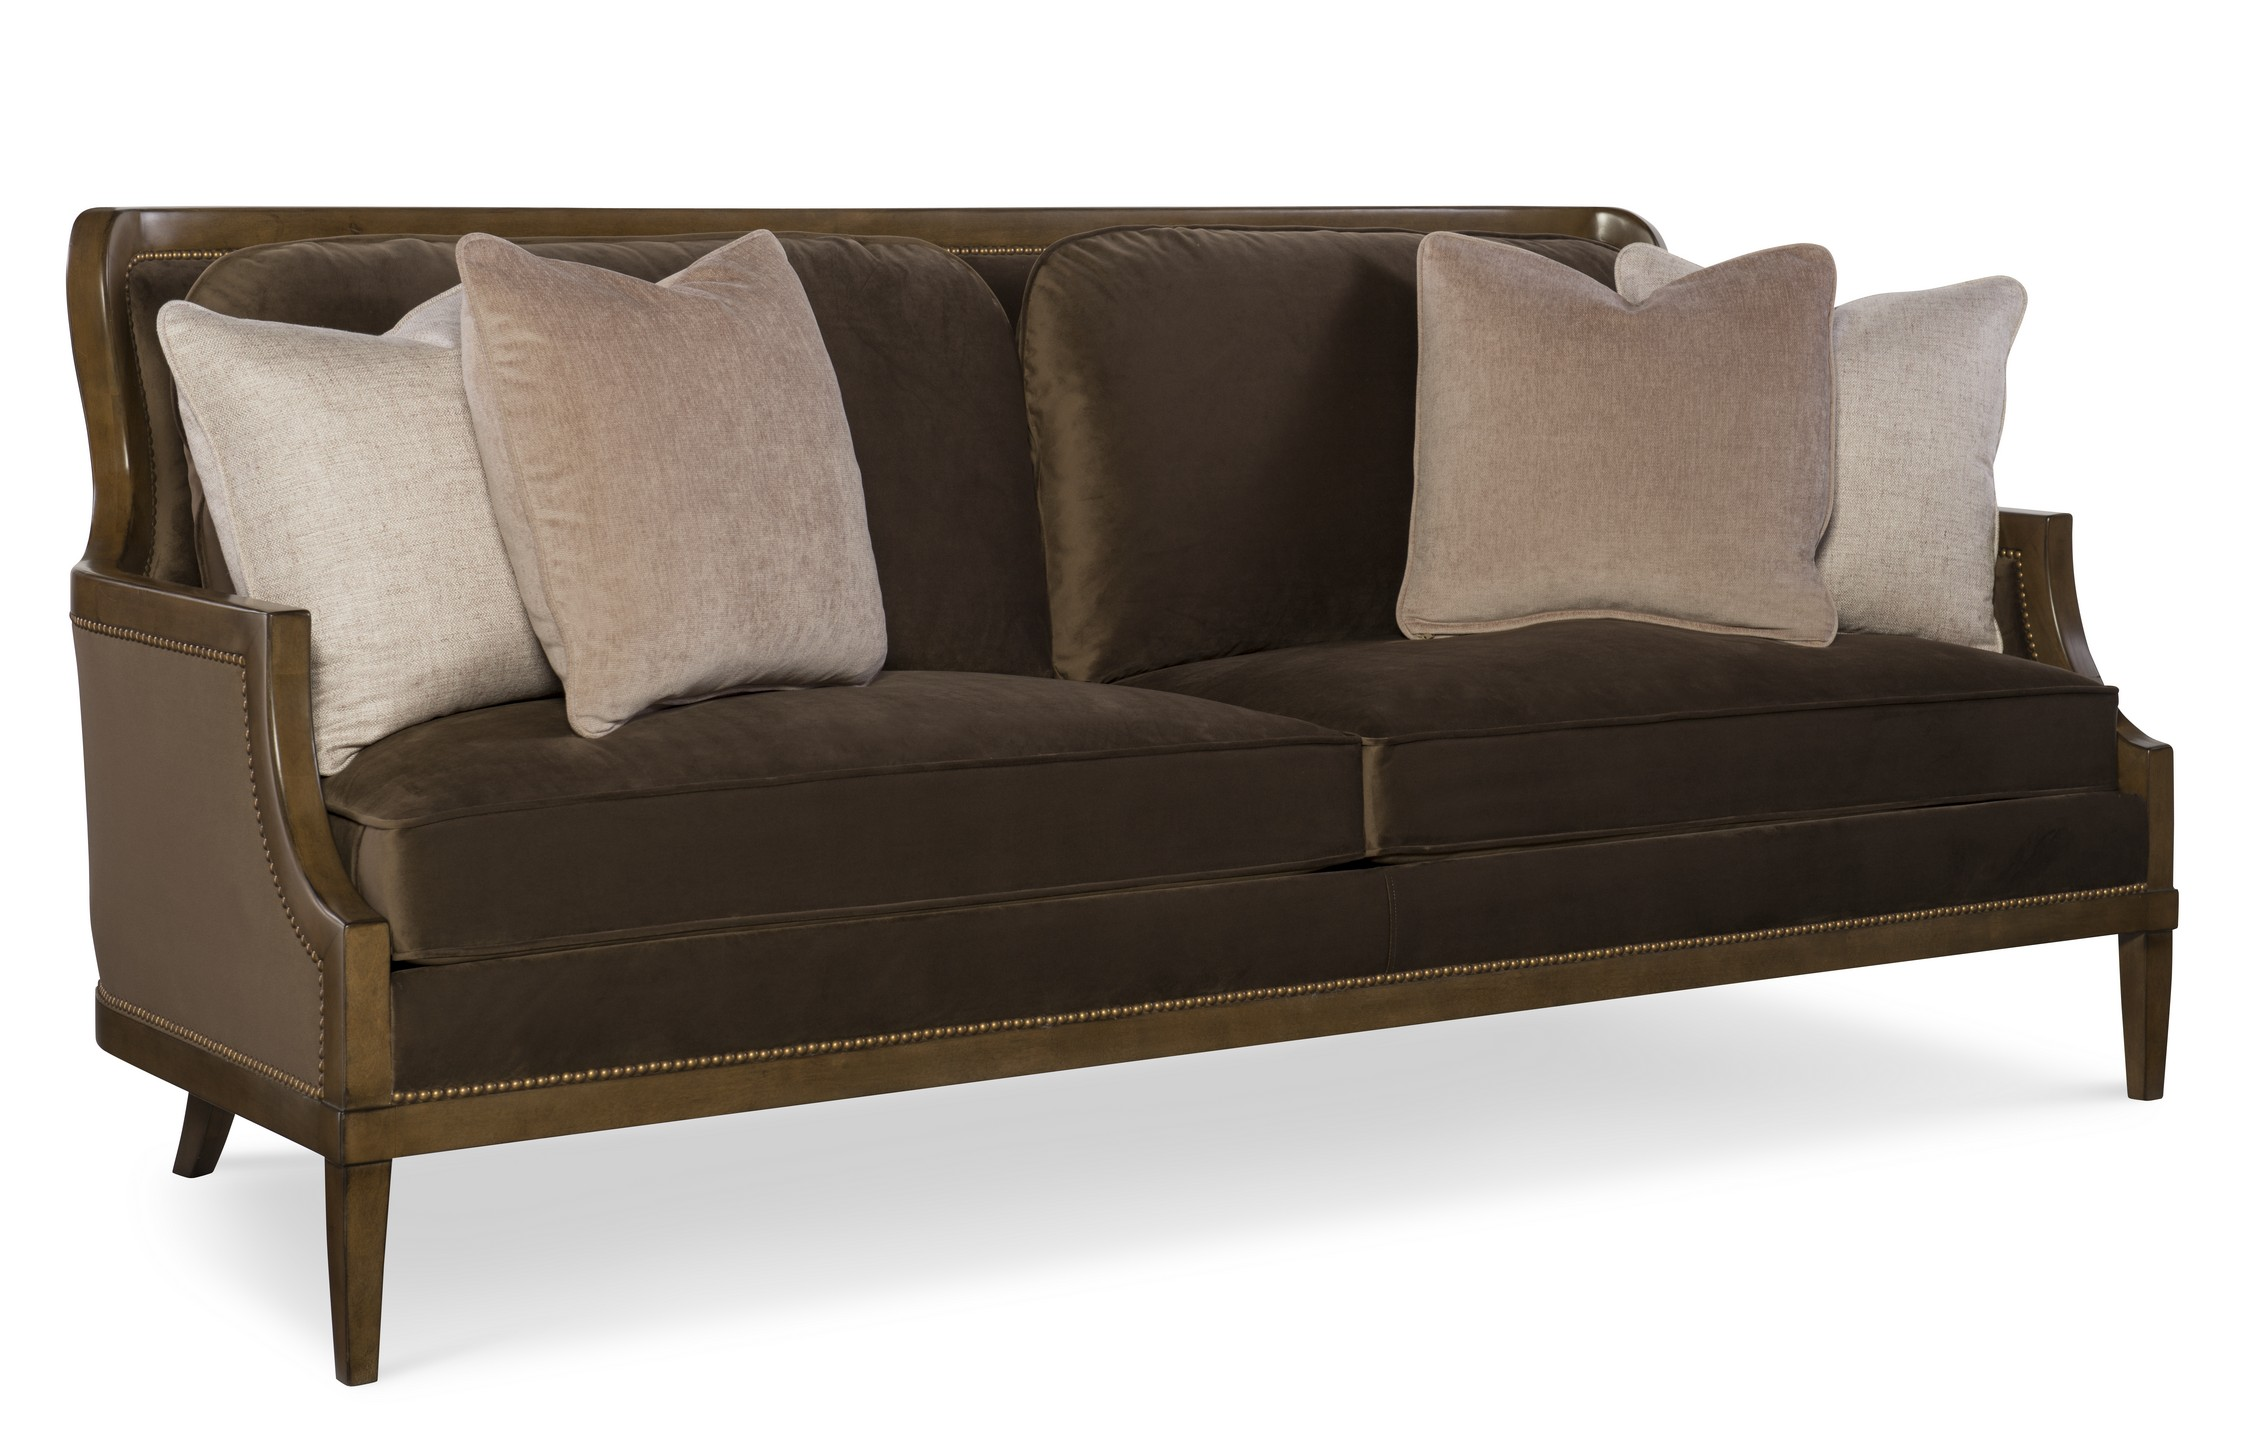 Bradford traditionally designed sofa in a chocolate brown fabric from Fine Furniture